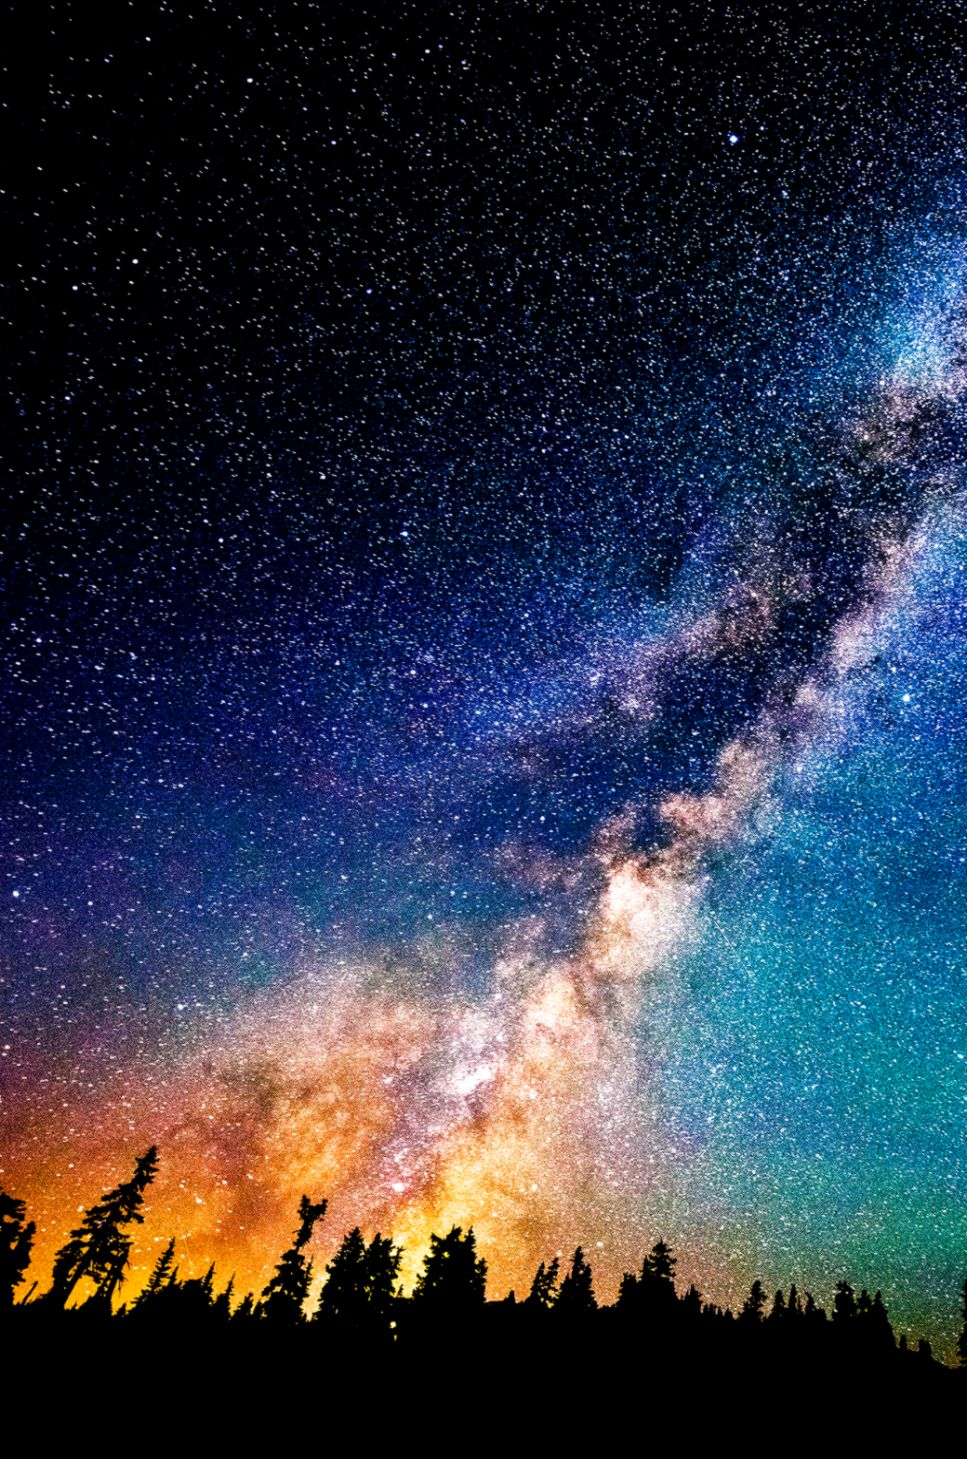 Wallpapers of the week starred night sky